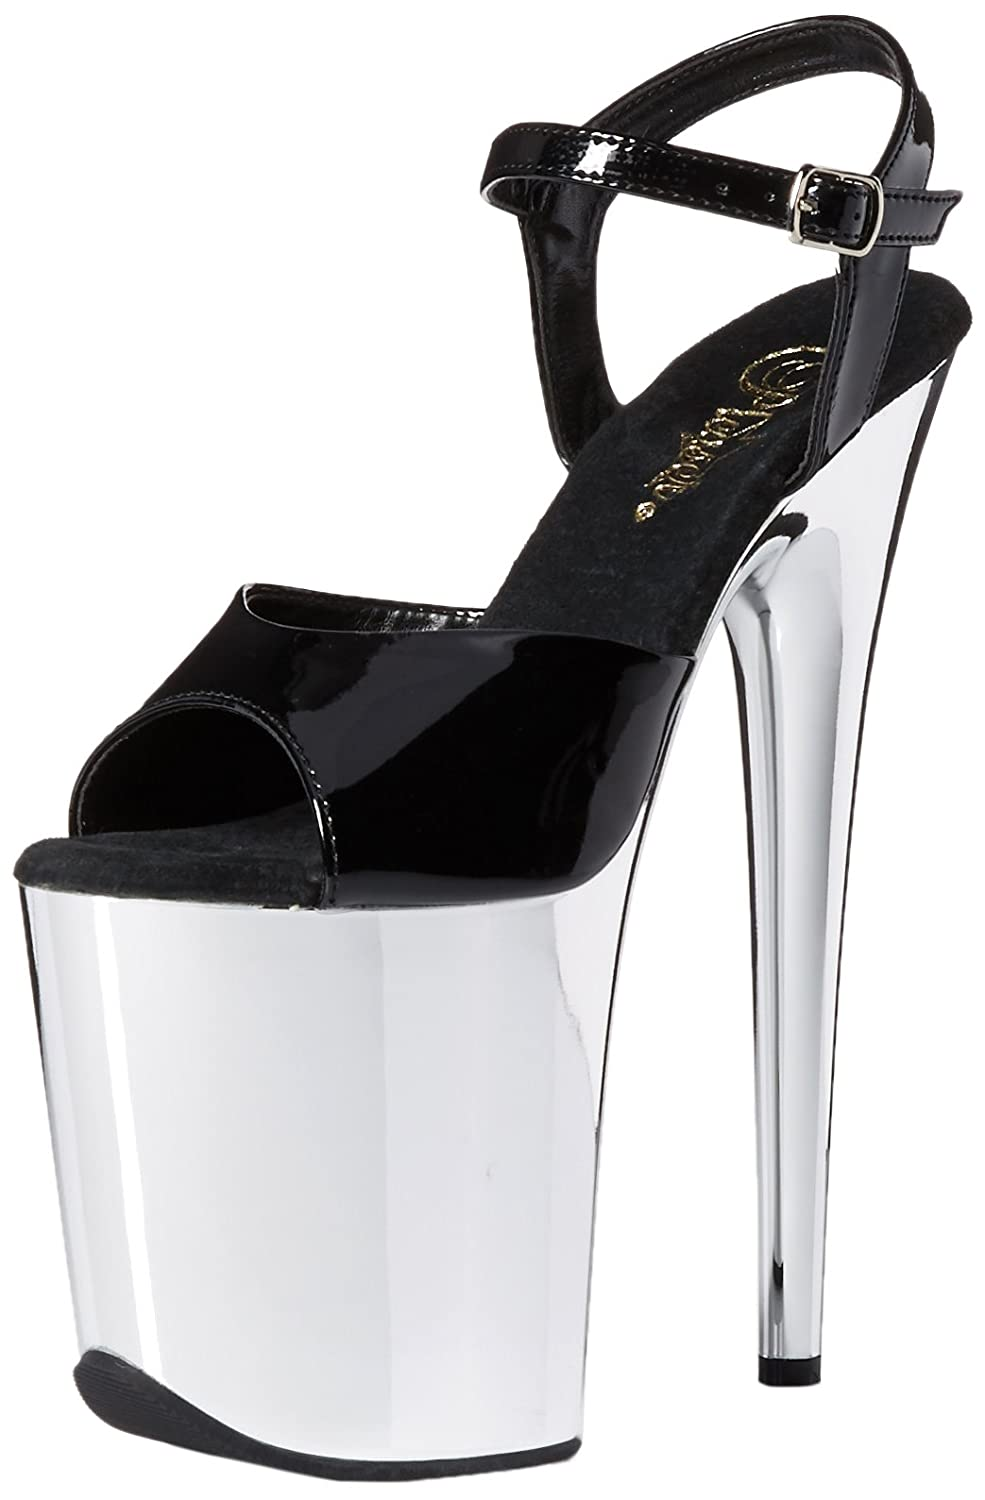 Pleaser Women's FLAM809/B/SCH Platform Dress Sandal B014IZC7YE 11 B(M) US|Black Patent/Silver Chrome